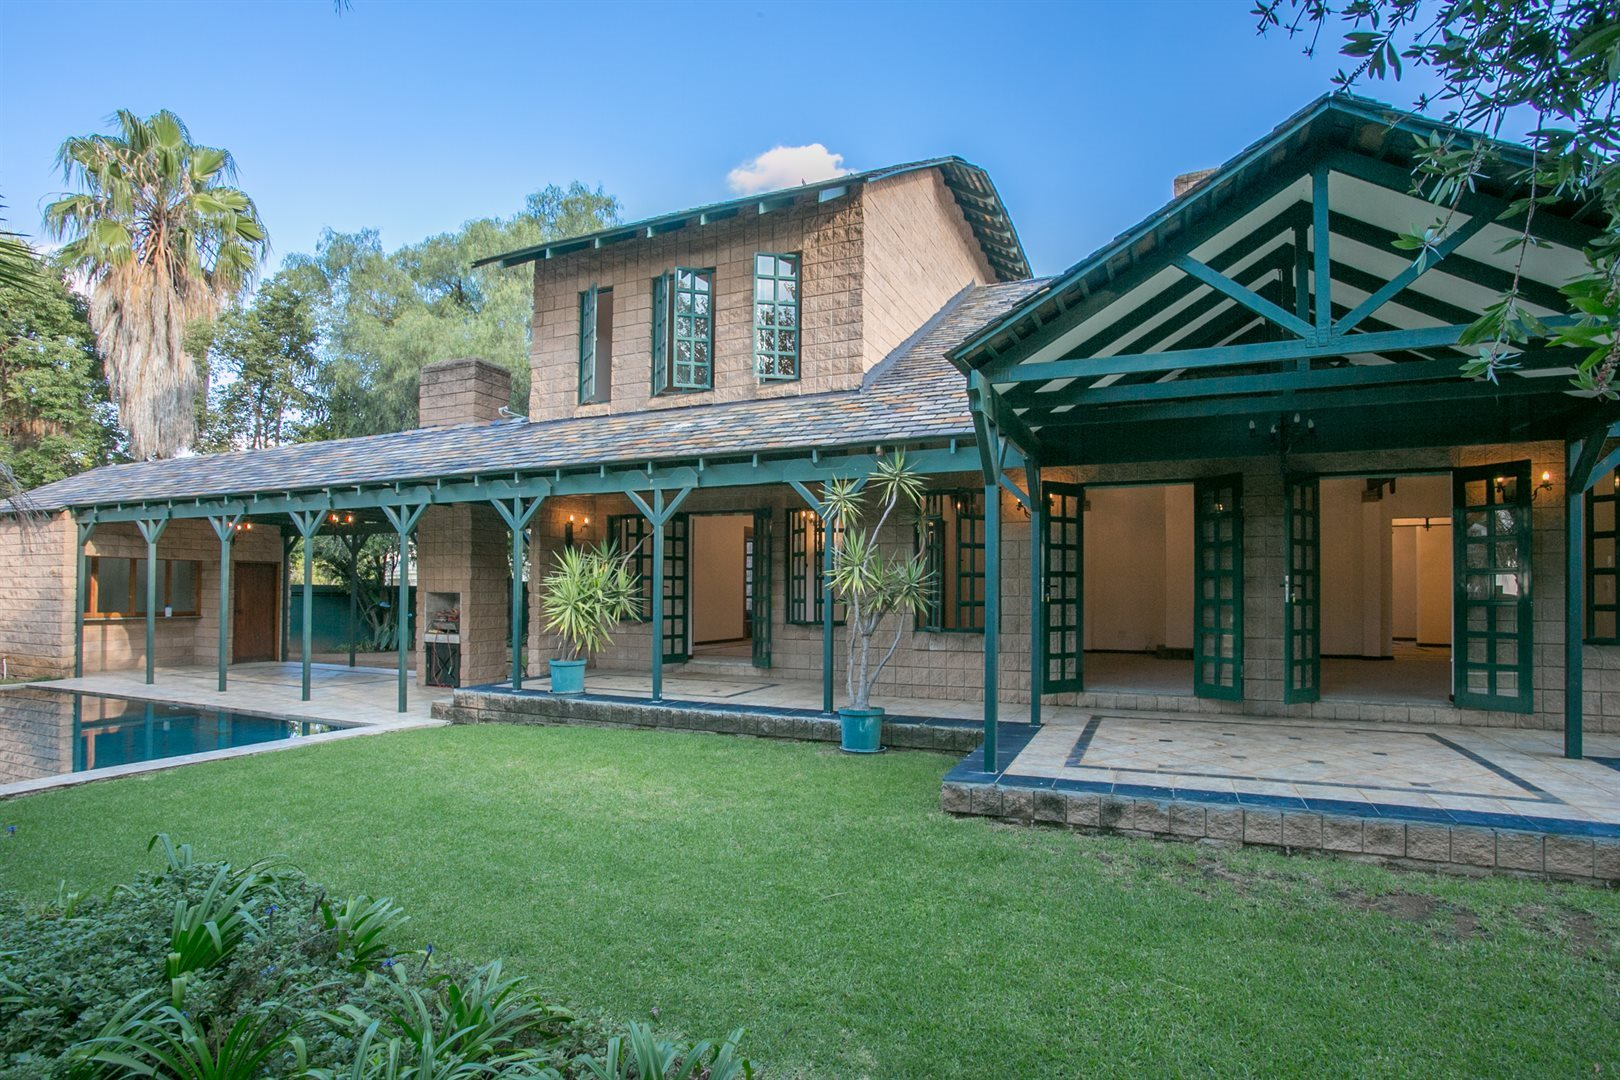 House for sale in fourways gardens 5 bedroom 13579340 5 6 for 5 6 bedroom houses for sale